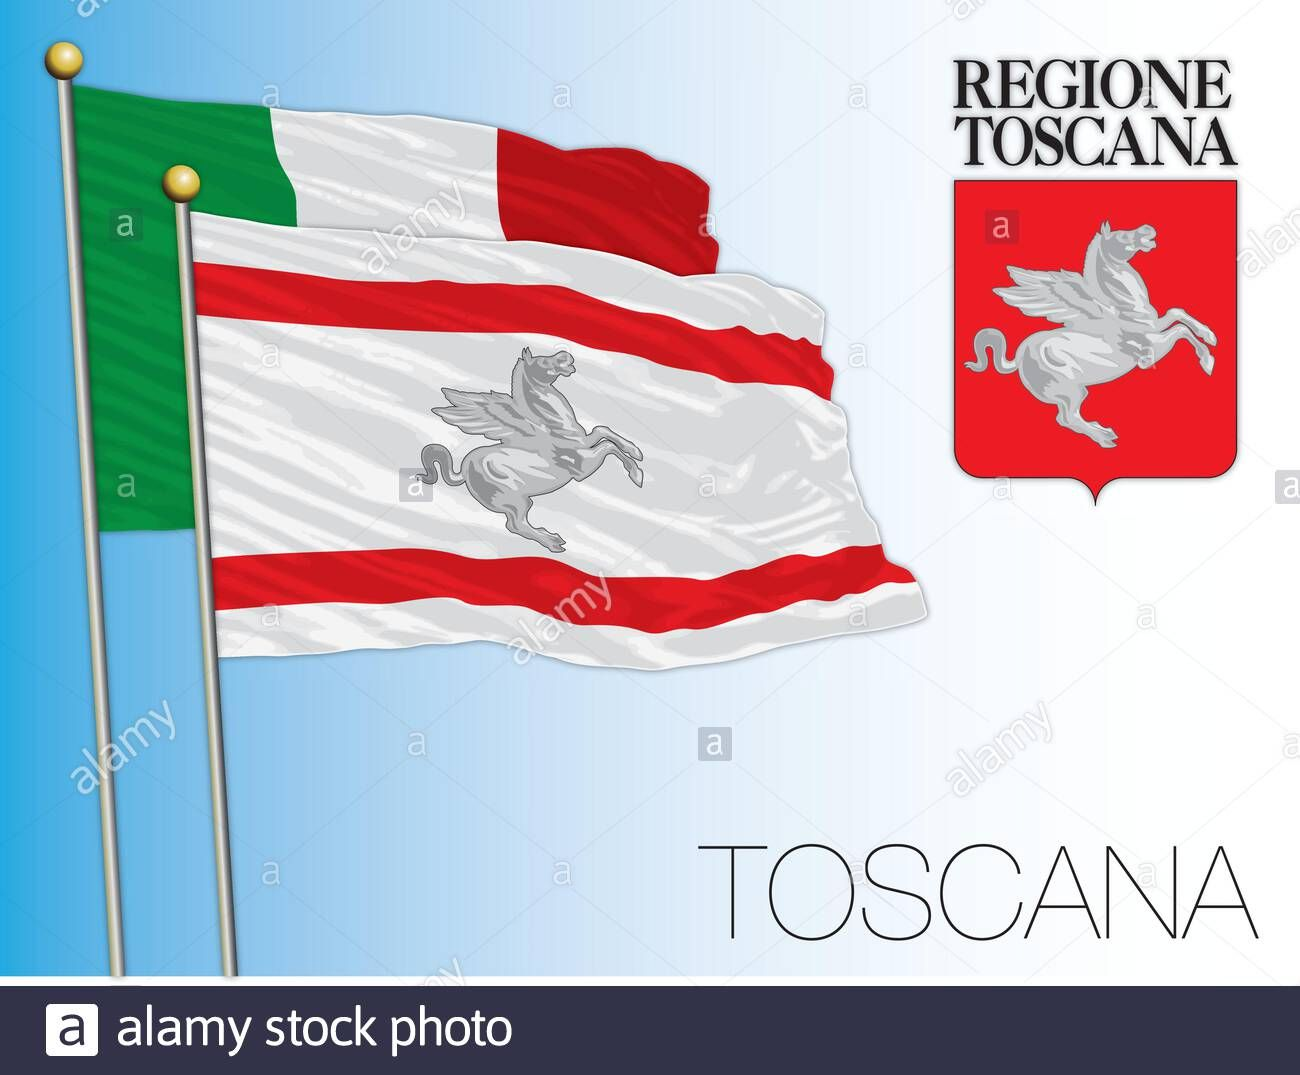 Download This Stock Vector Tuscany Official Regional Flag And Coat Of Arms Italy Vector Illustration 2awk9ab From Al In 2020 Flag Coat Of Arms Vector Illustration